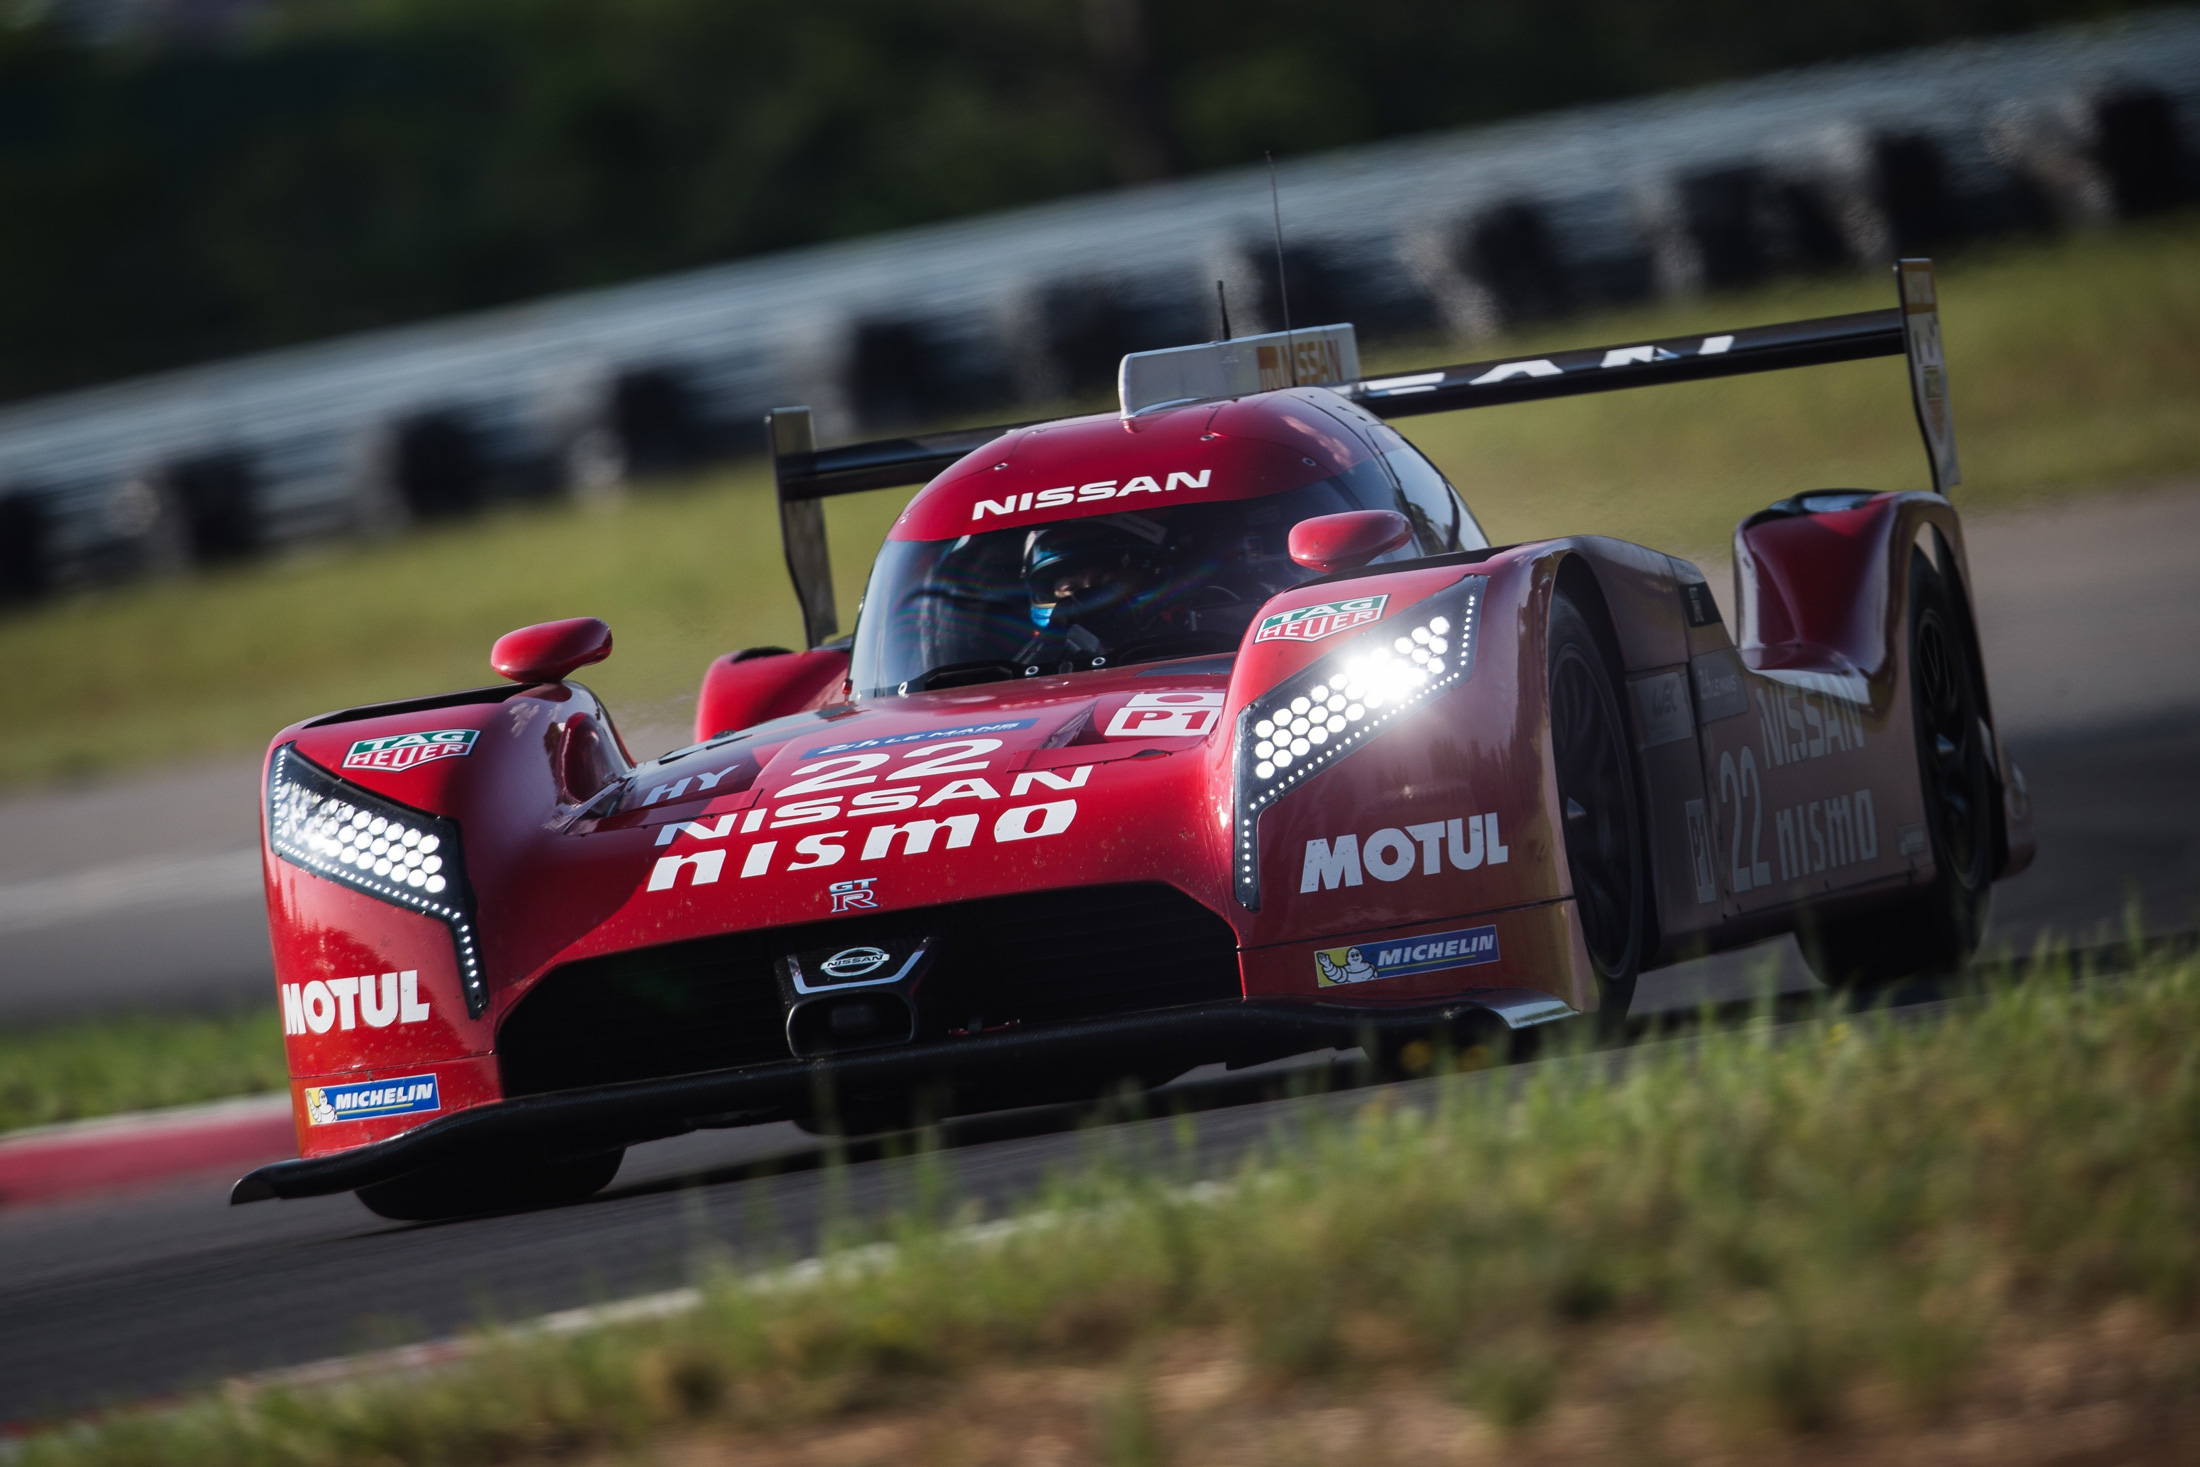 The Nissan GT-R LM Nismo: Winning by Losing at Le Mans